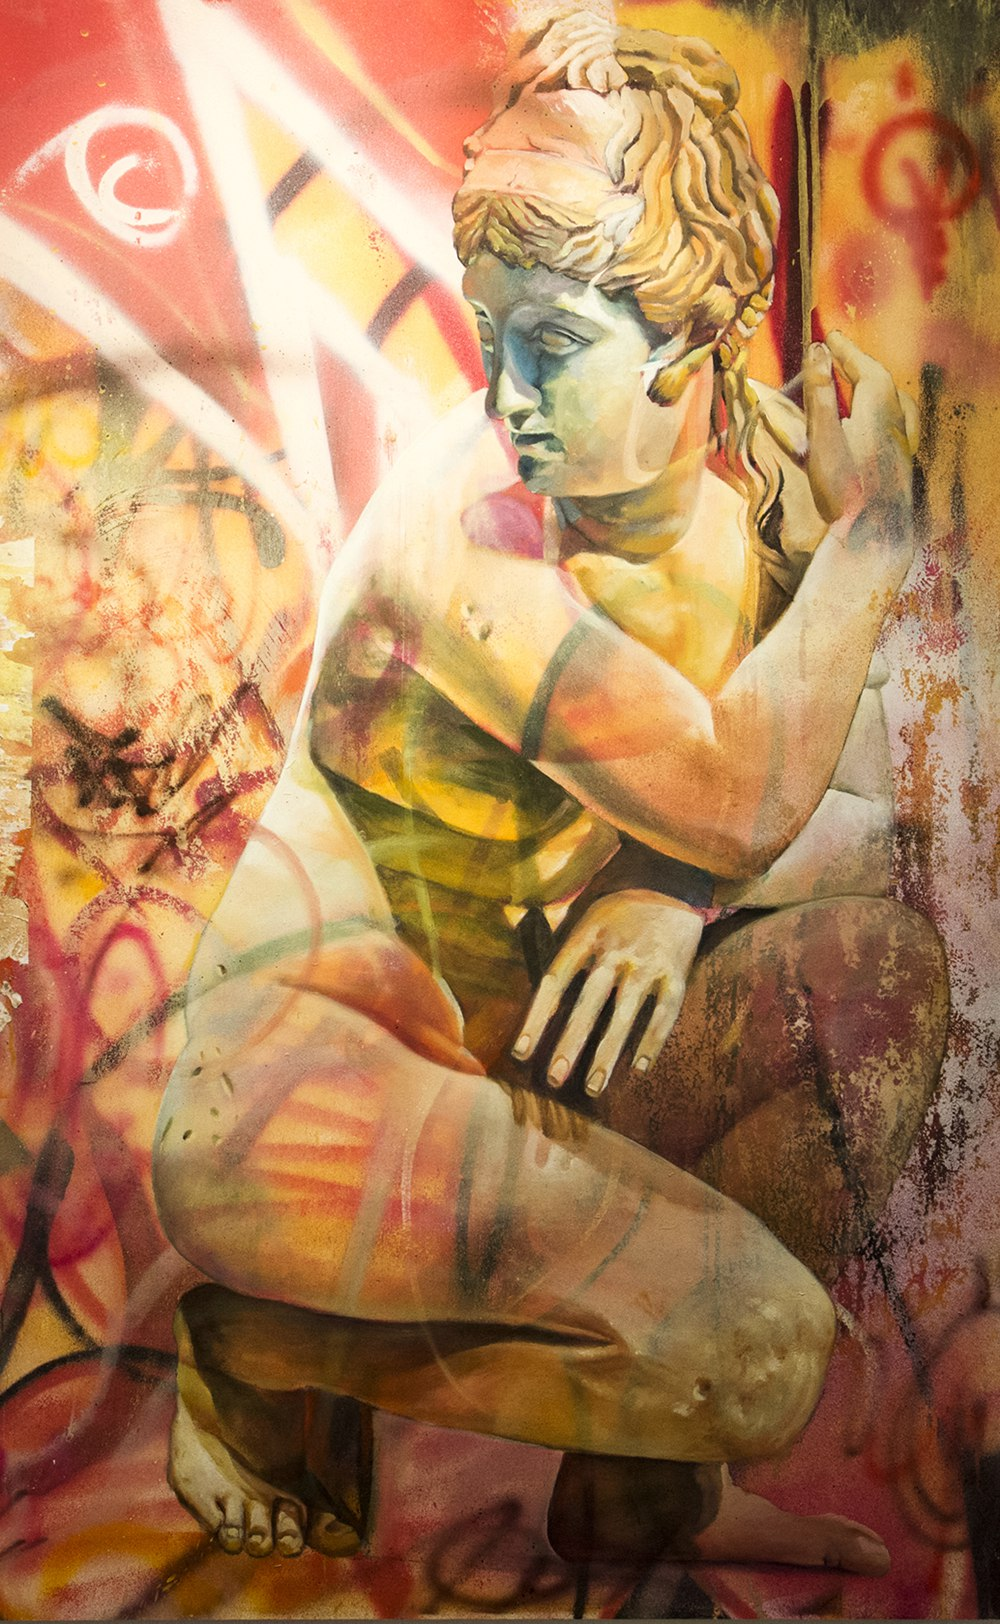 Pichi Avo Art - graffitistreet - Aphrodite of walls